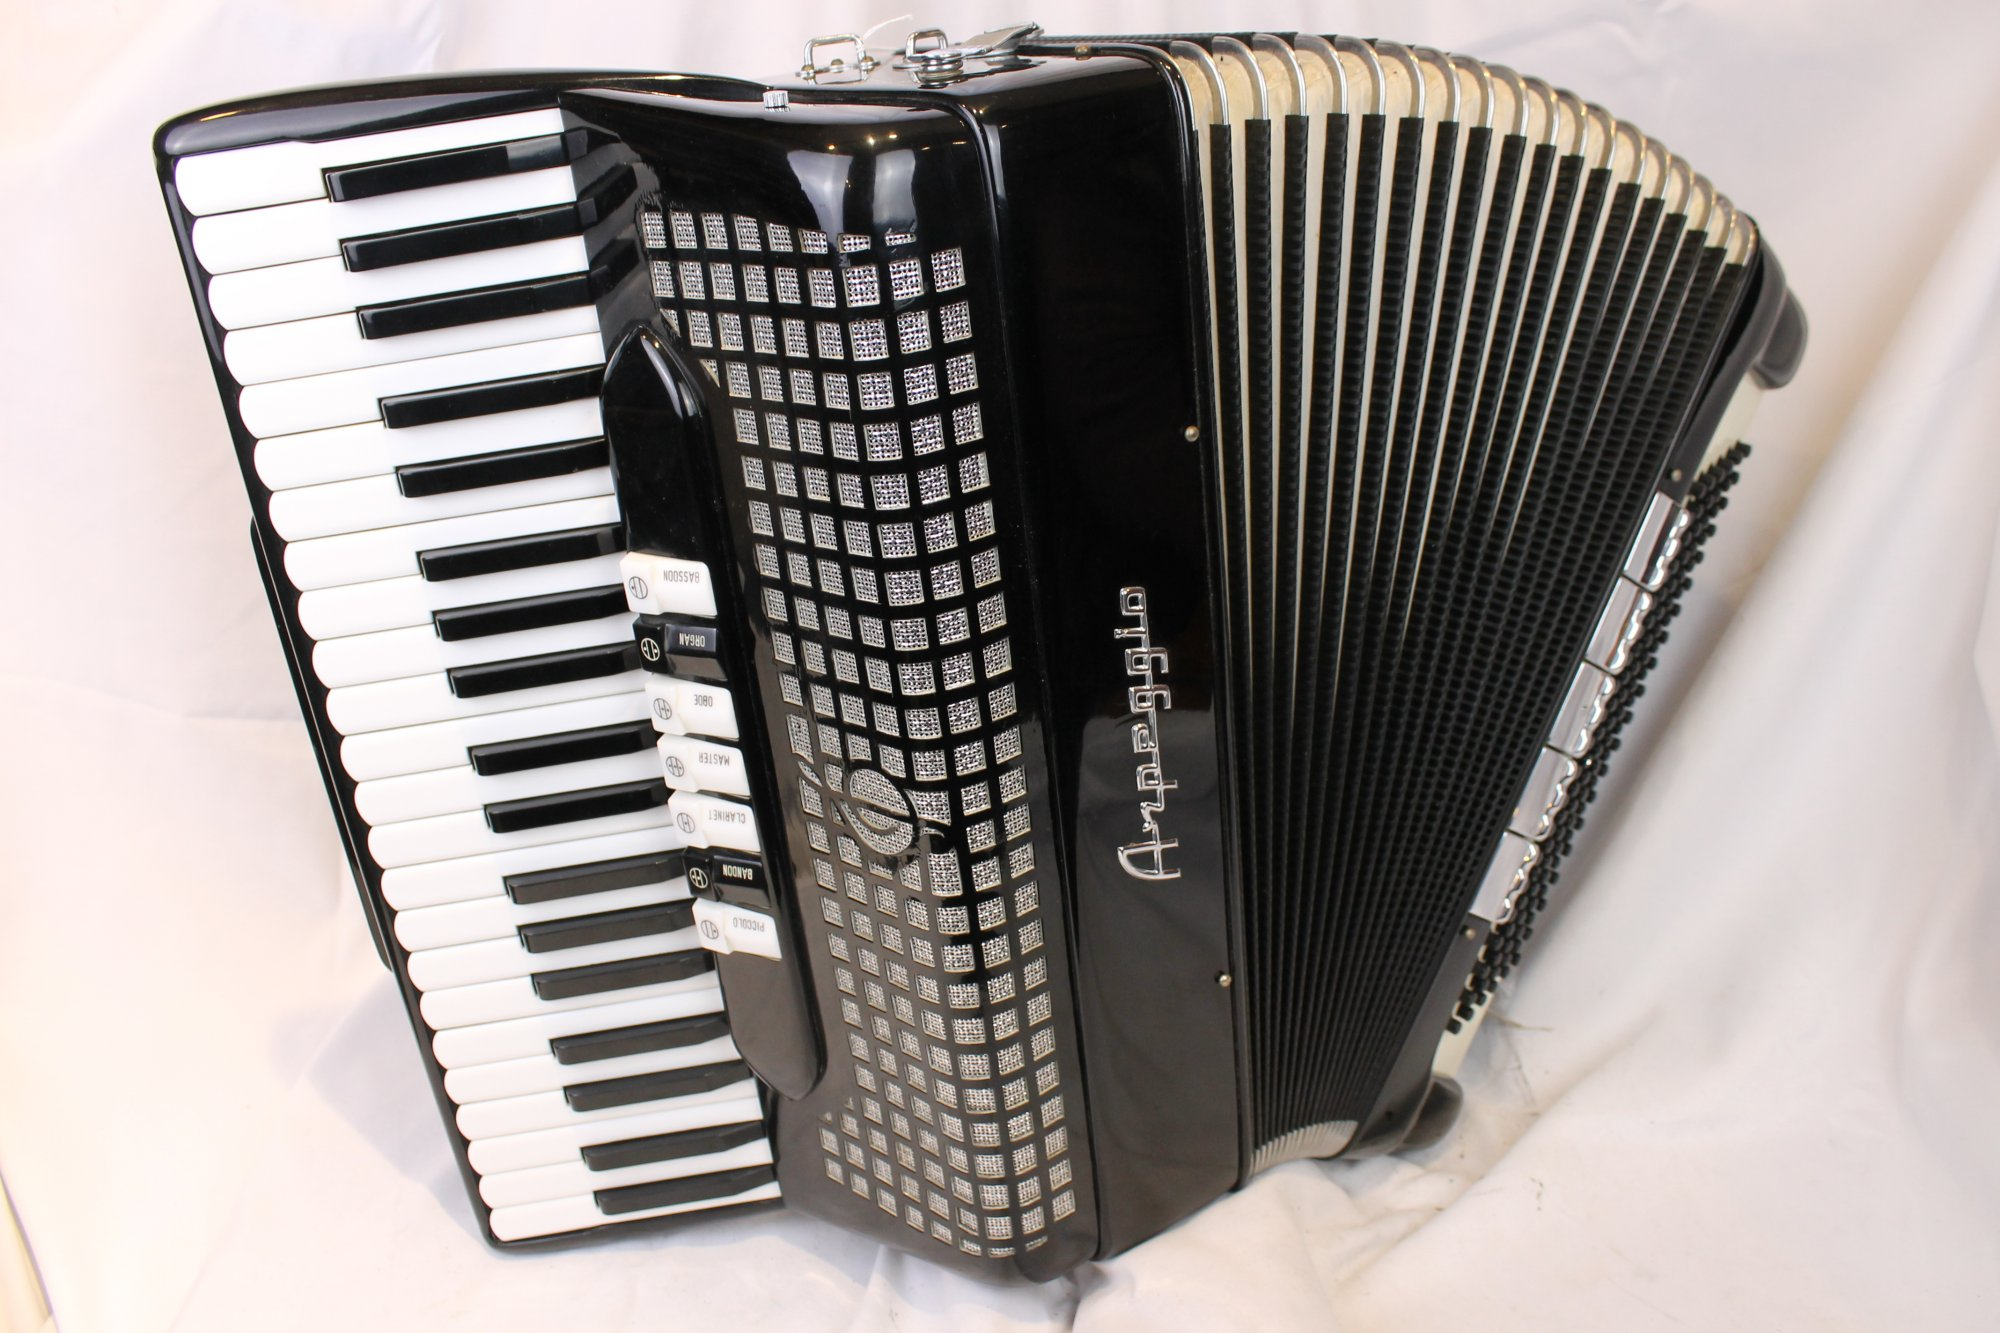 4038 - Black Arpeggio Triple Tone Chamber Piano Accordion LMH 41 120